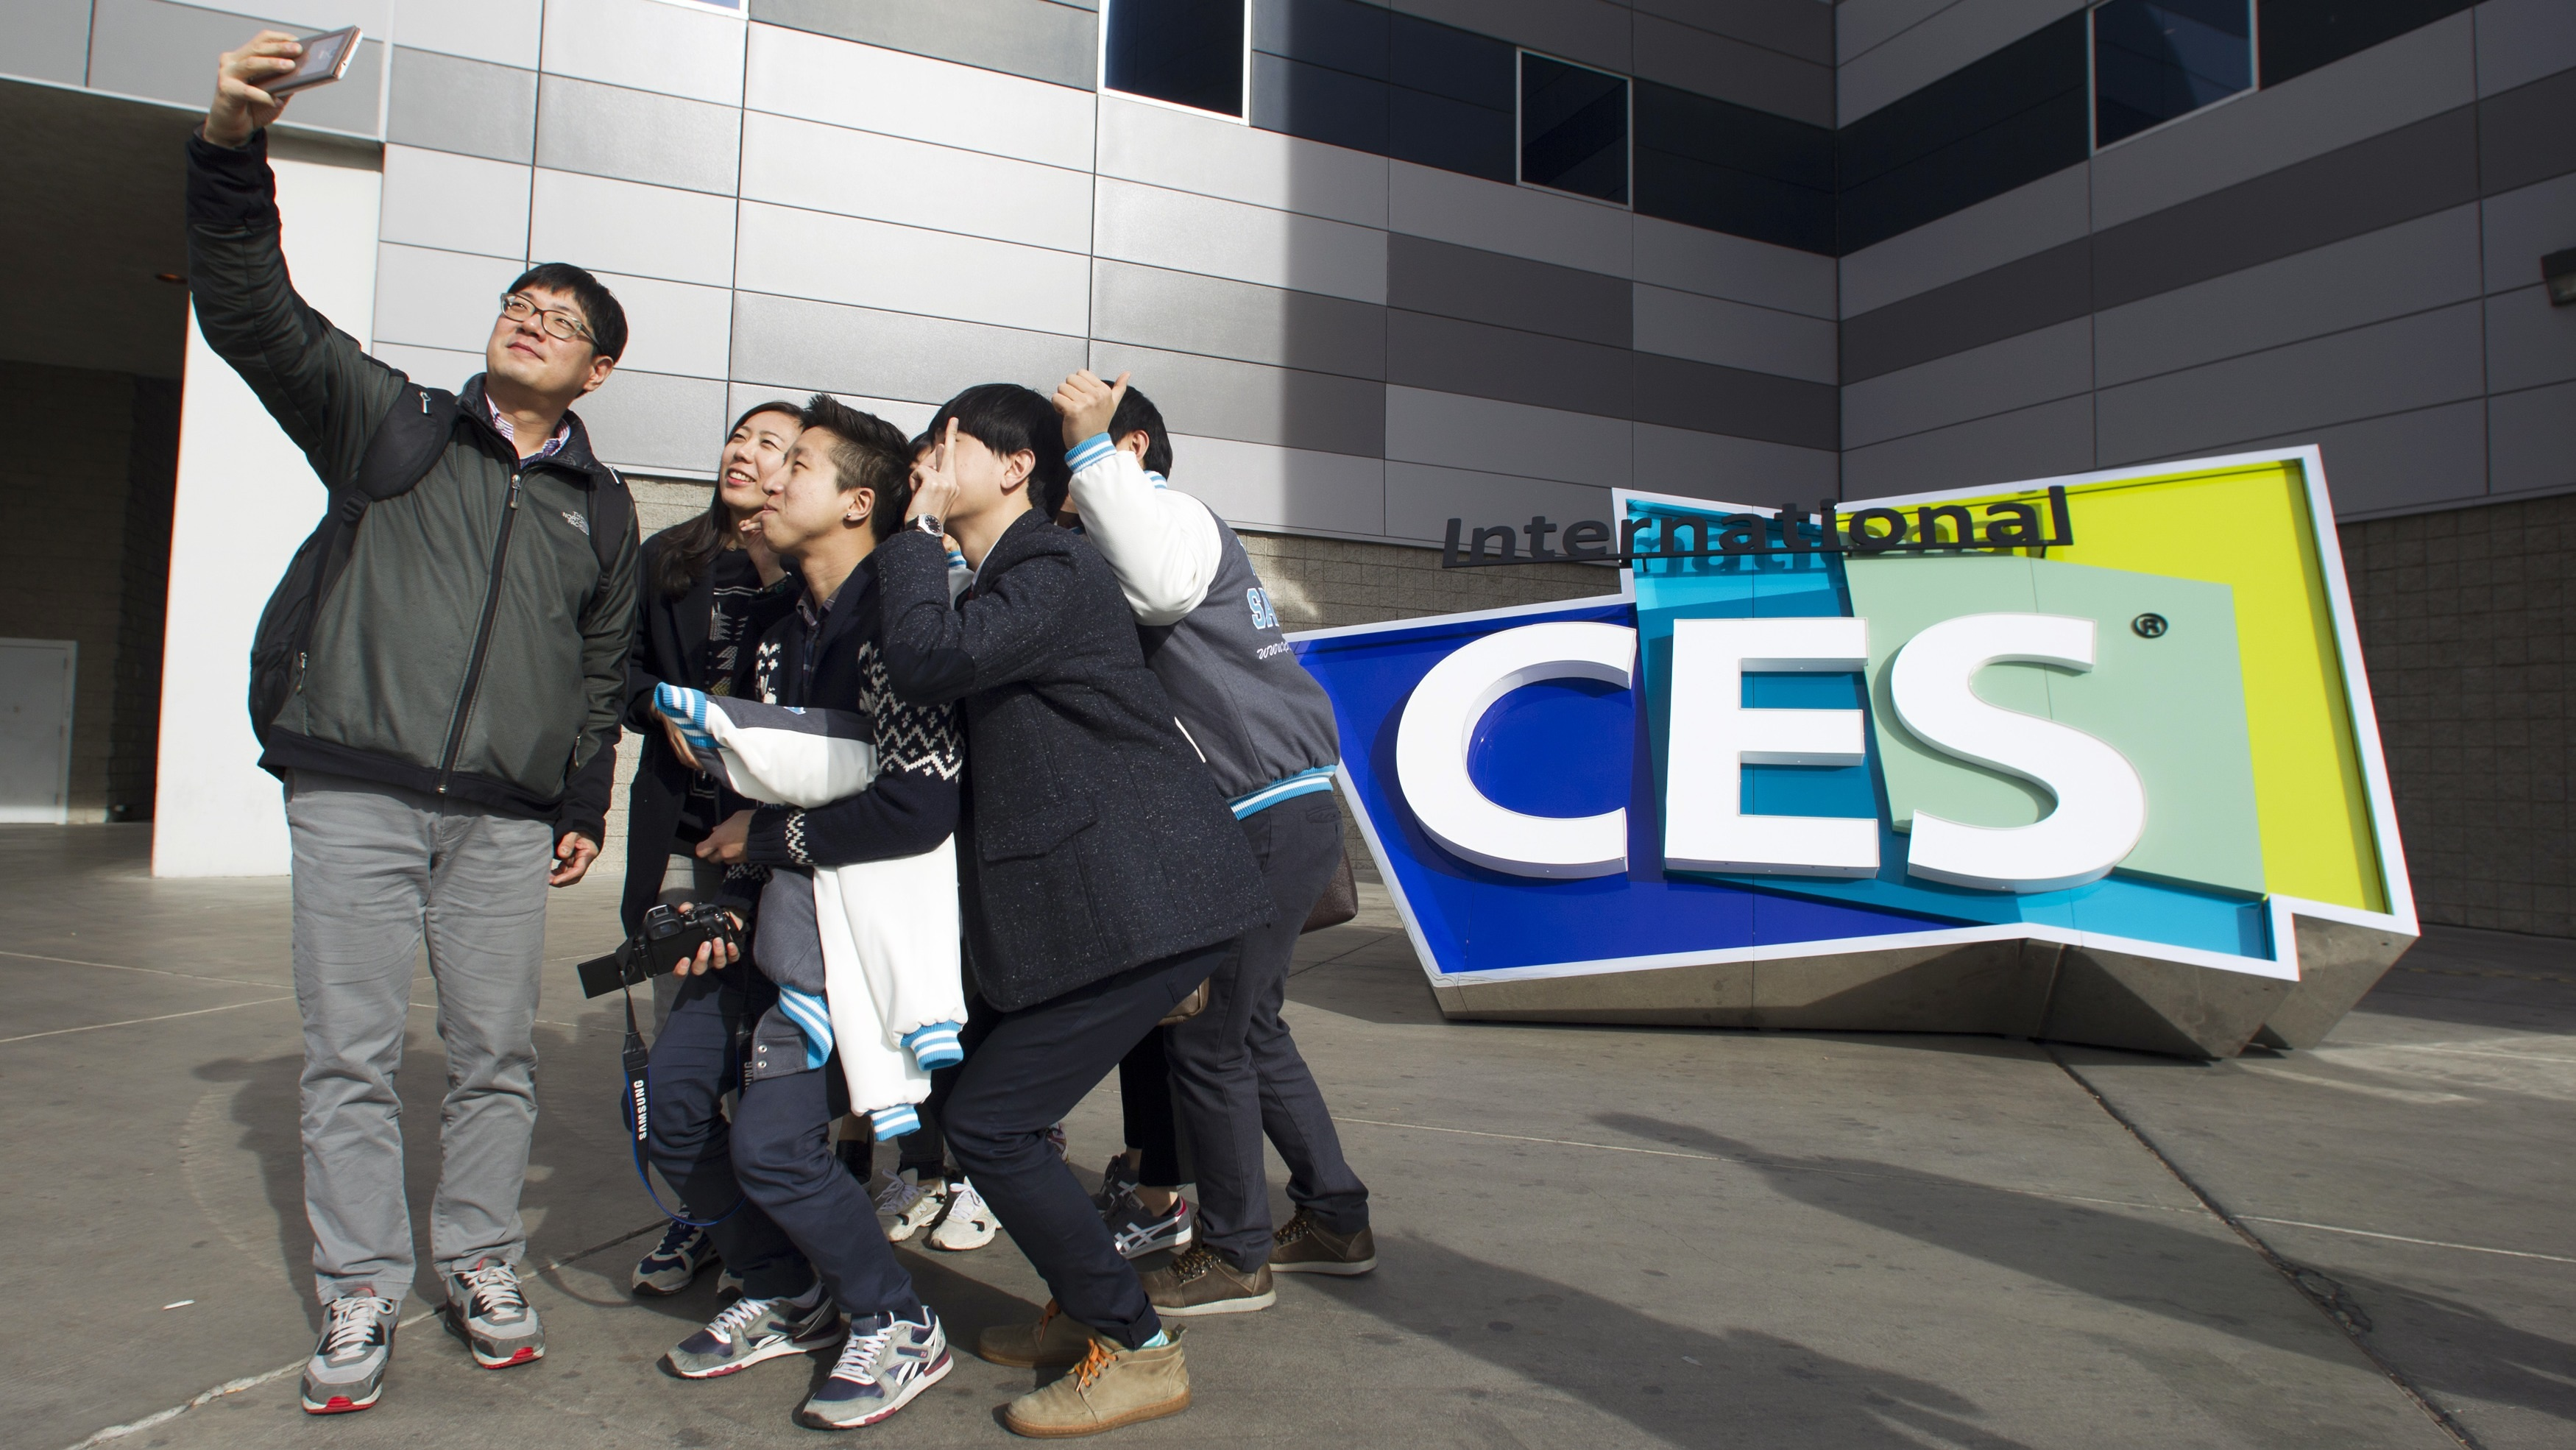 South Korean university students take a selfie in front of an International CES sign at the Las Vegas Convention Center in Las Vegas, Nevada January 4, 2015. The 2015 International Consumer Electronics Show (CES) officially starts on January 6. An estimated 150,000 people and 3,500 exhibitors are expected to attend, according to organizers. REUTERS/Steve Marcus